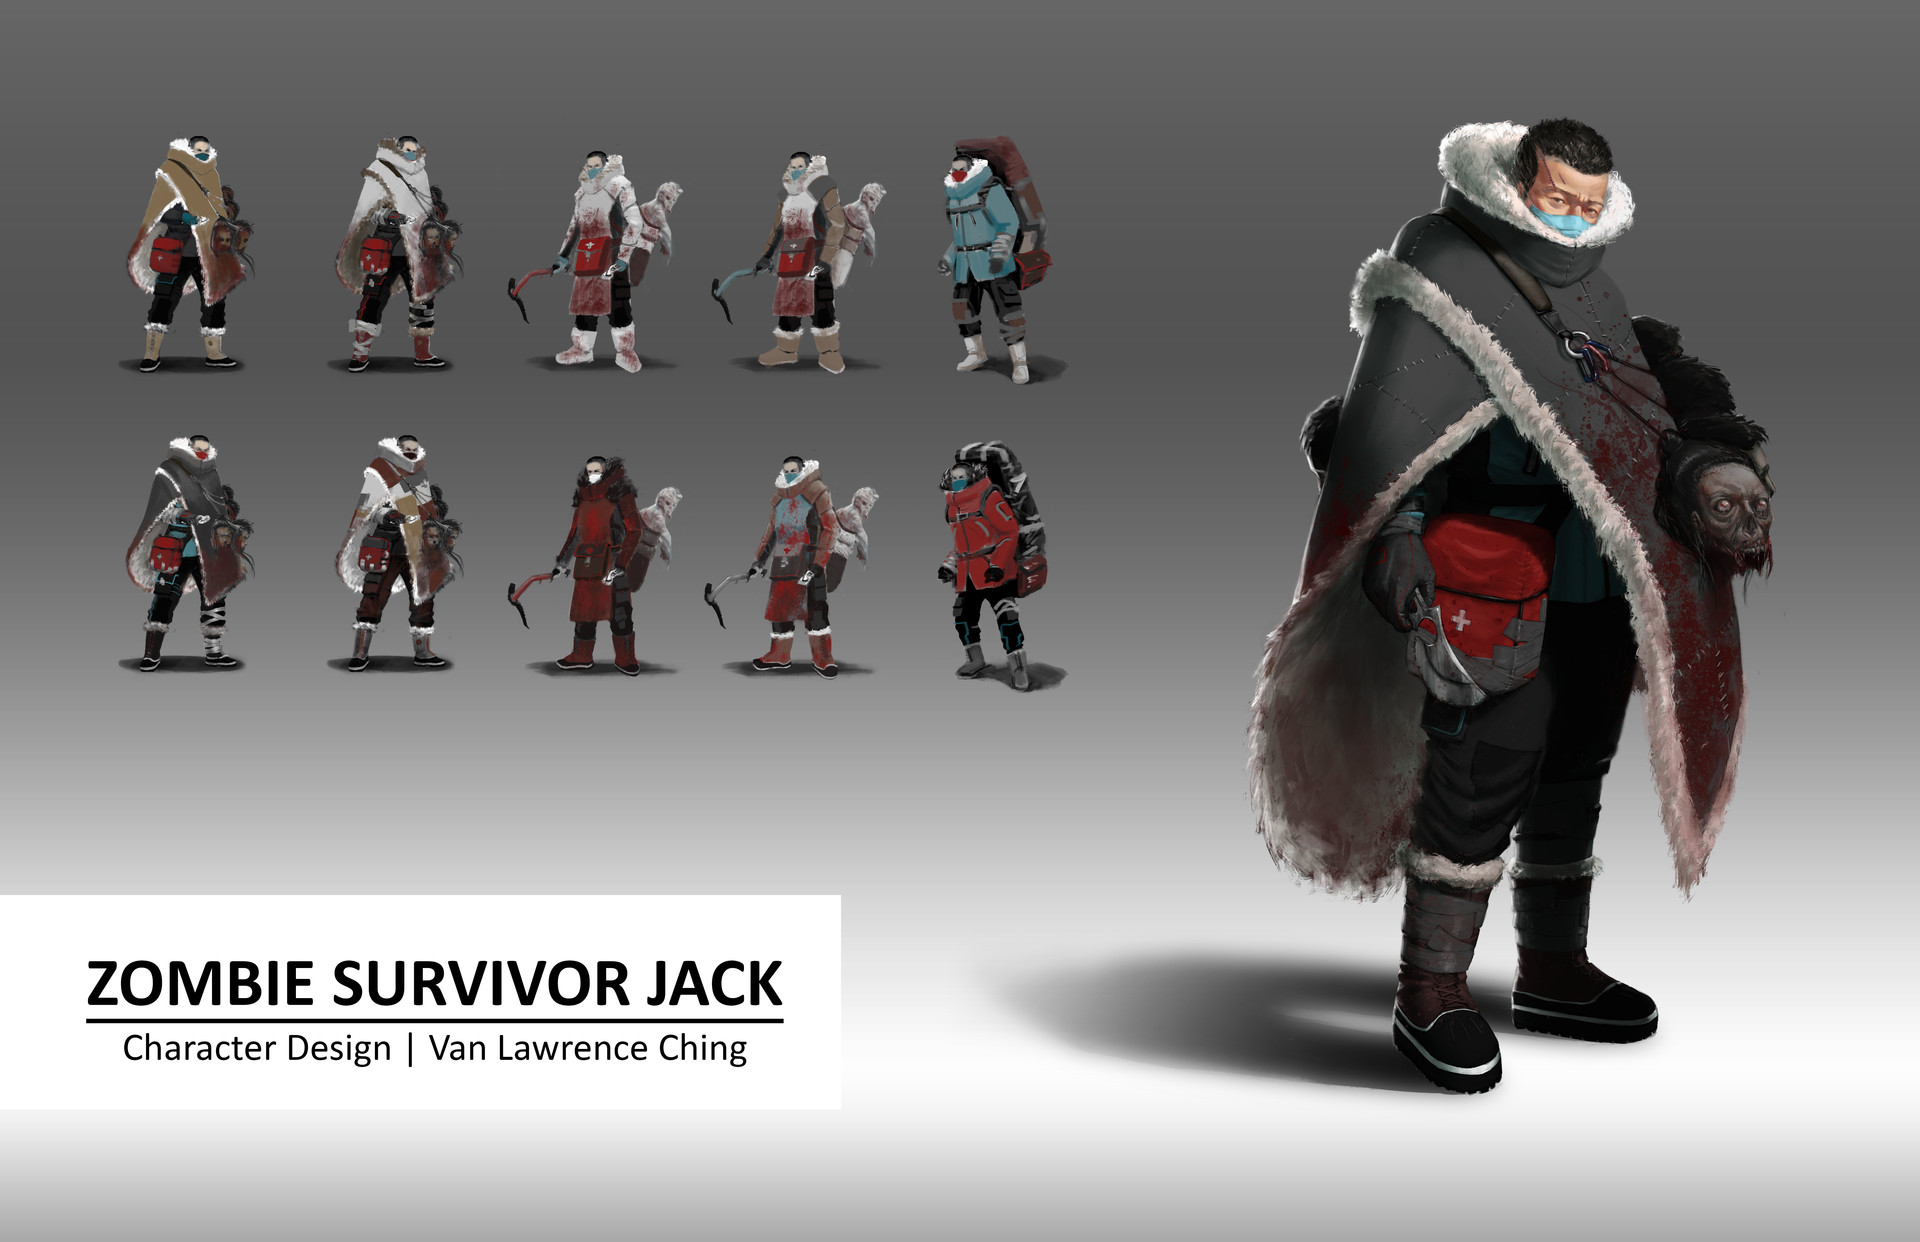 Van lawrence ching vanlawrenceching survivorjack finalhr01